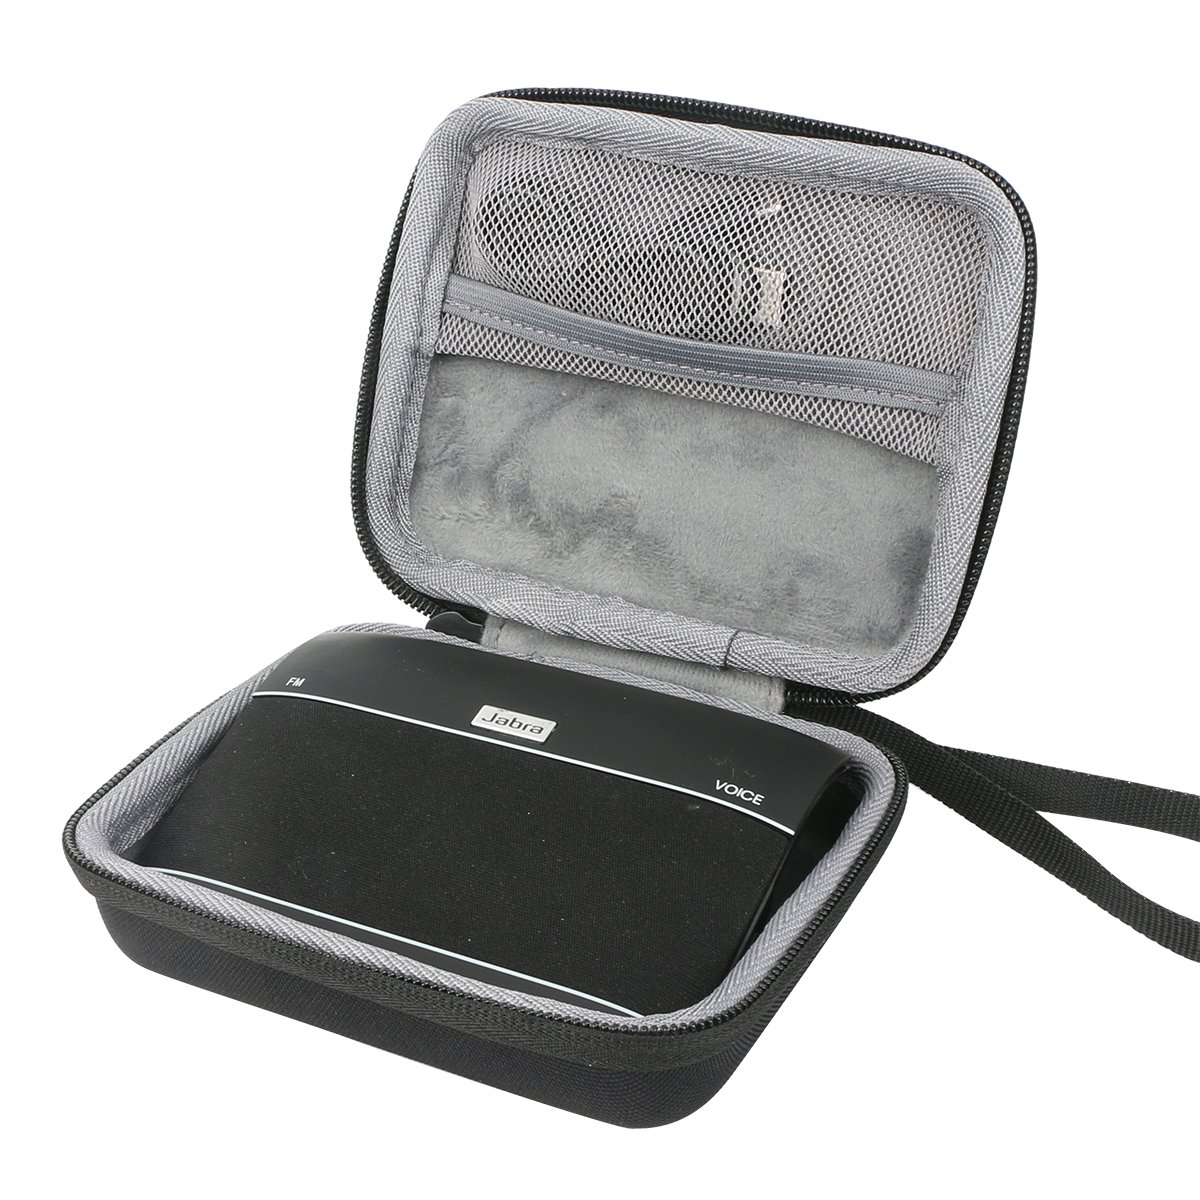 Hard Travel Case for Jabra Freeway Bluetooth In-Car Speakerphone by co2CREA